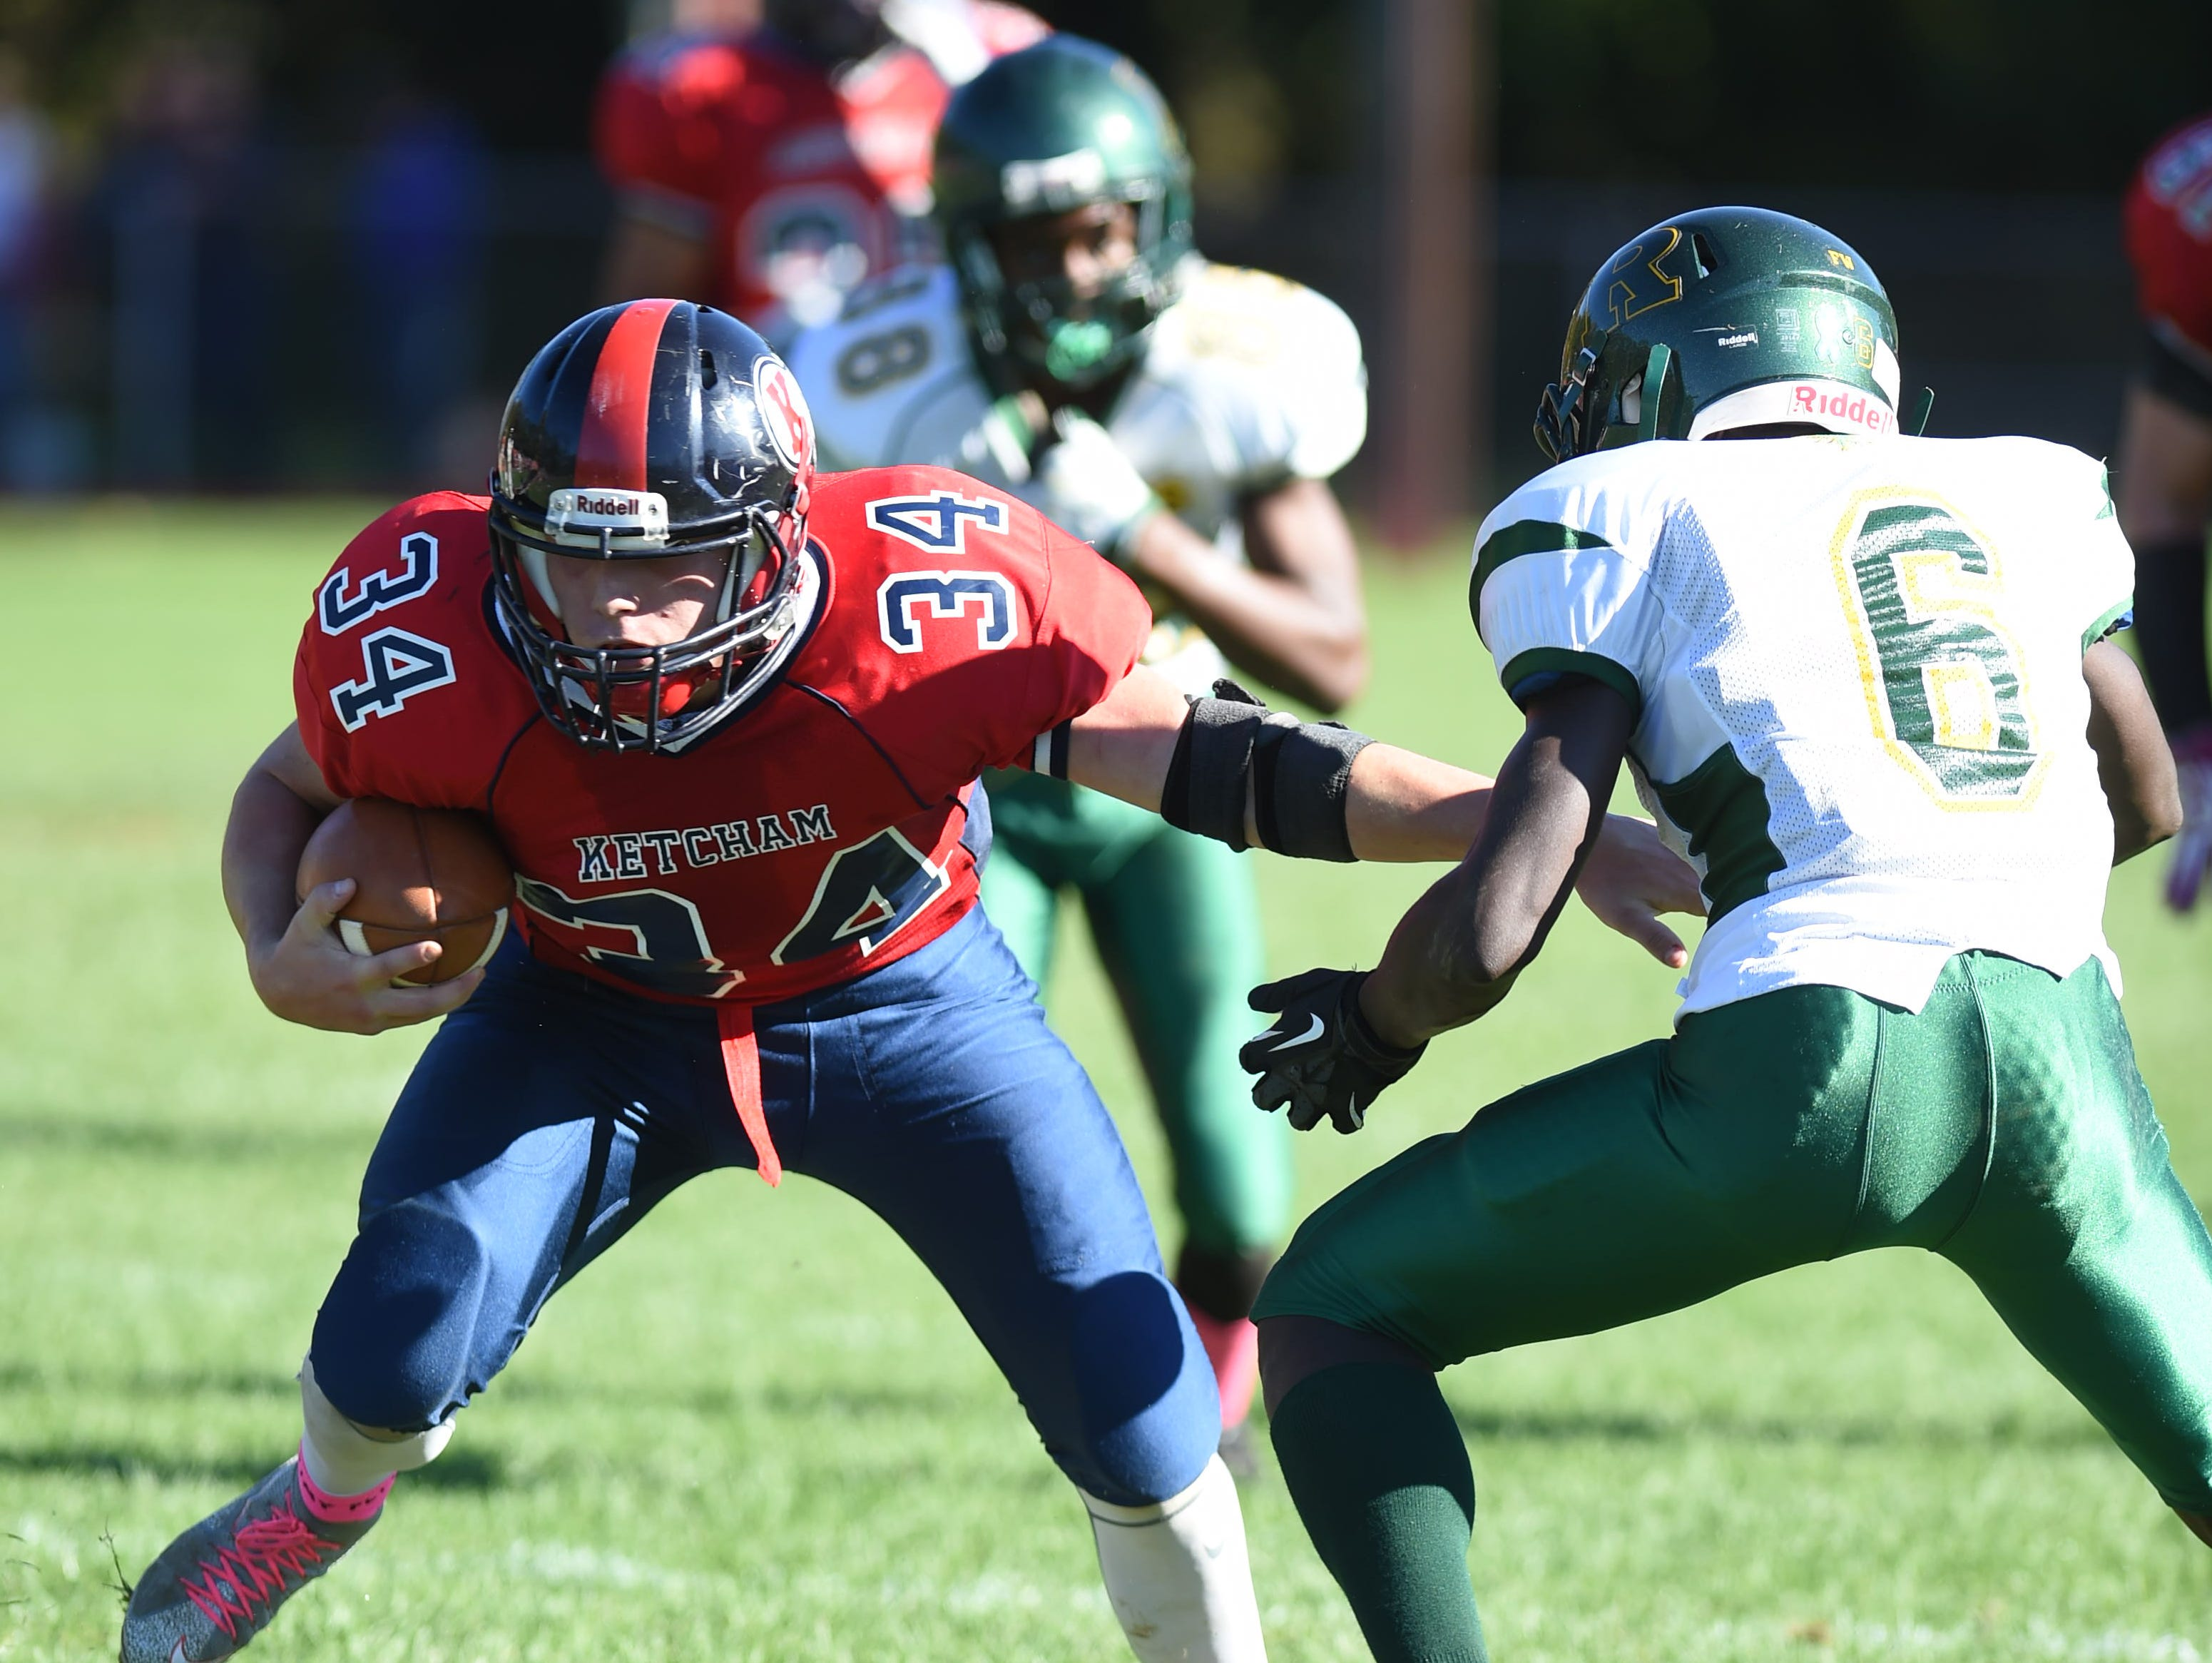 Action from Saturday's game between Ketcham and Ramapo in Wappingers Falls.